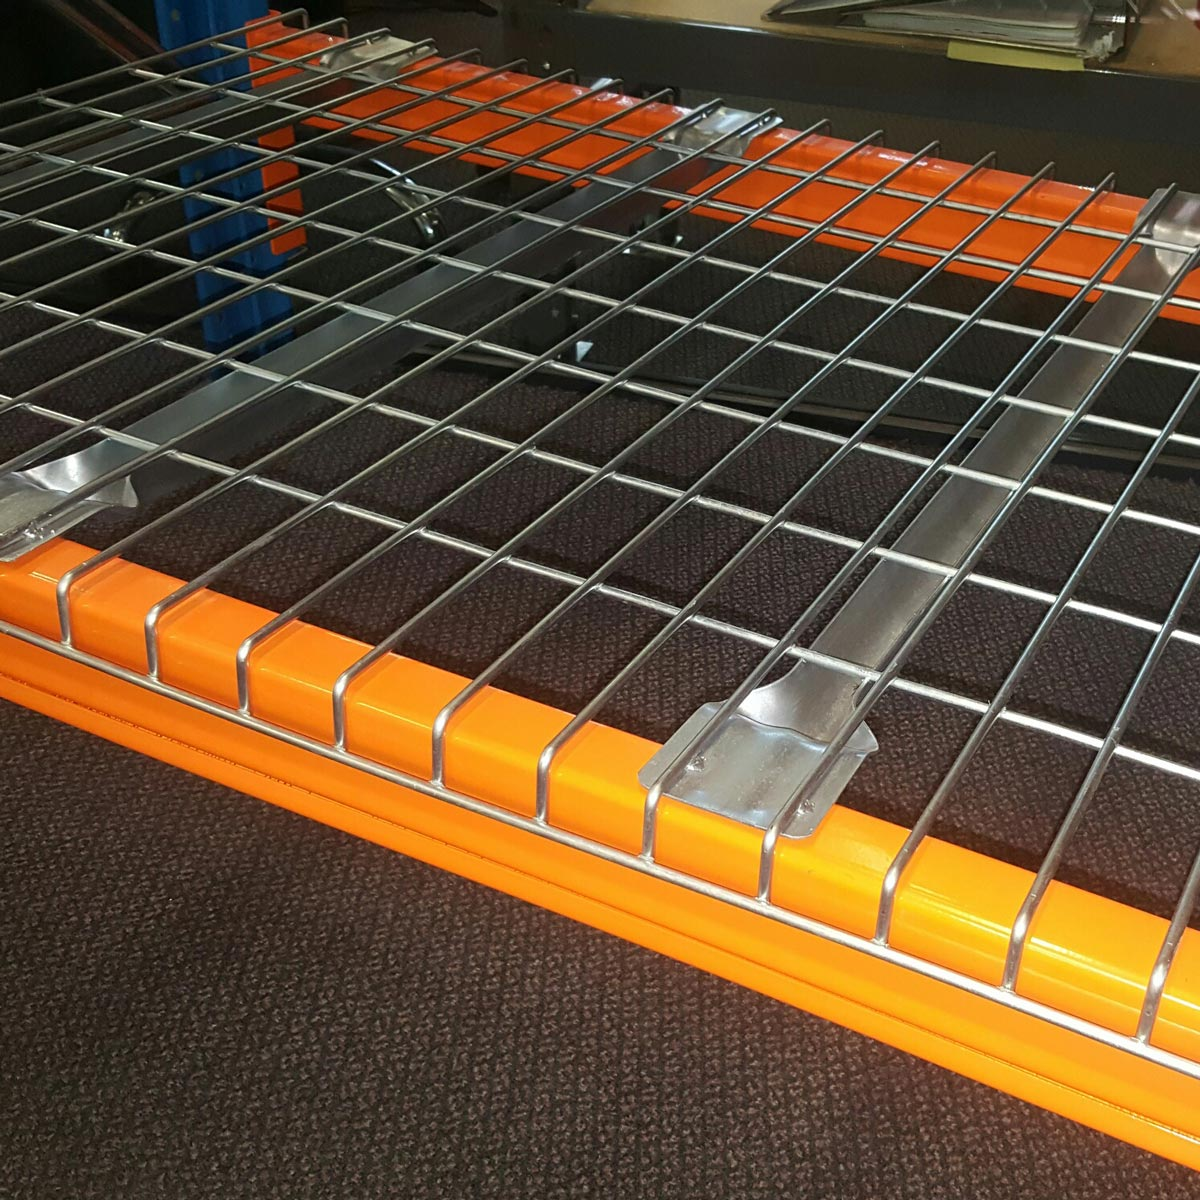 Mesh Deck for Pallet Racking - close up view.